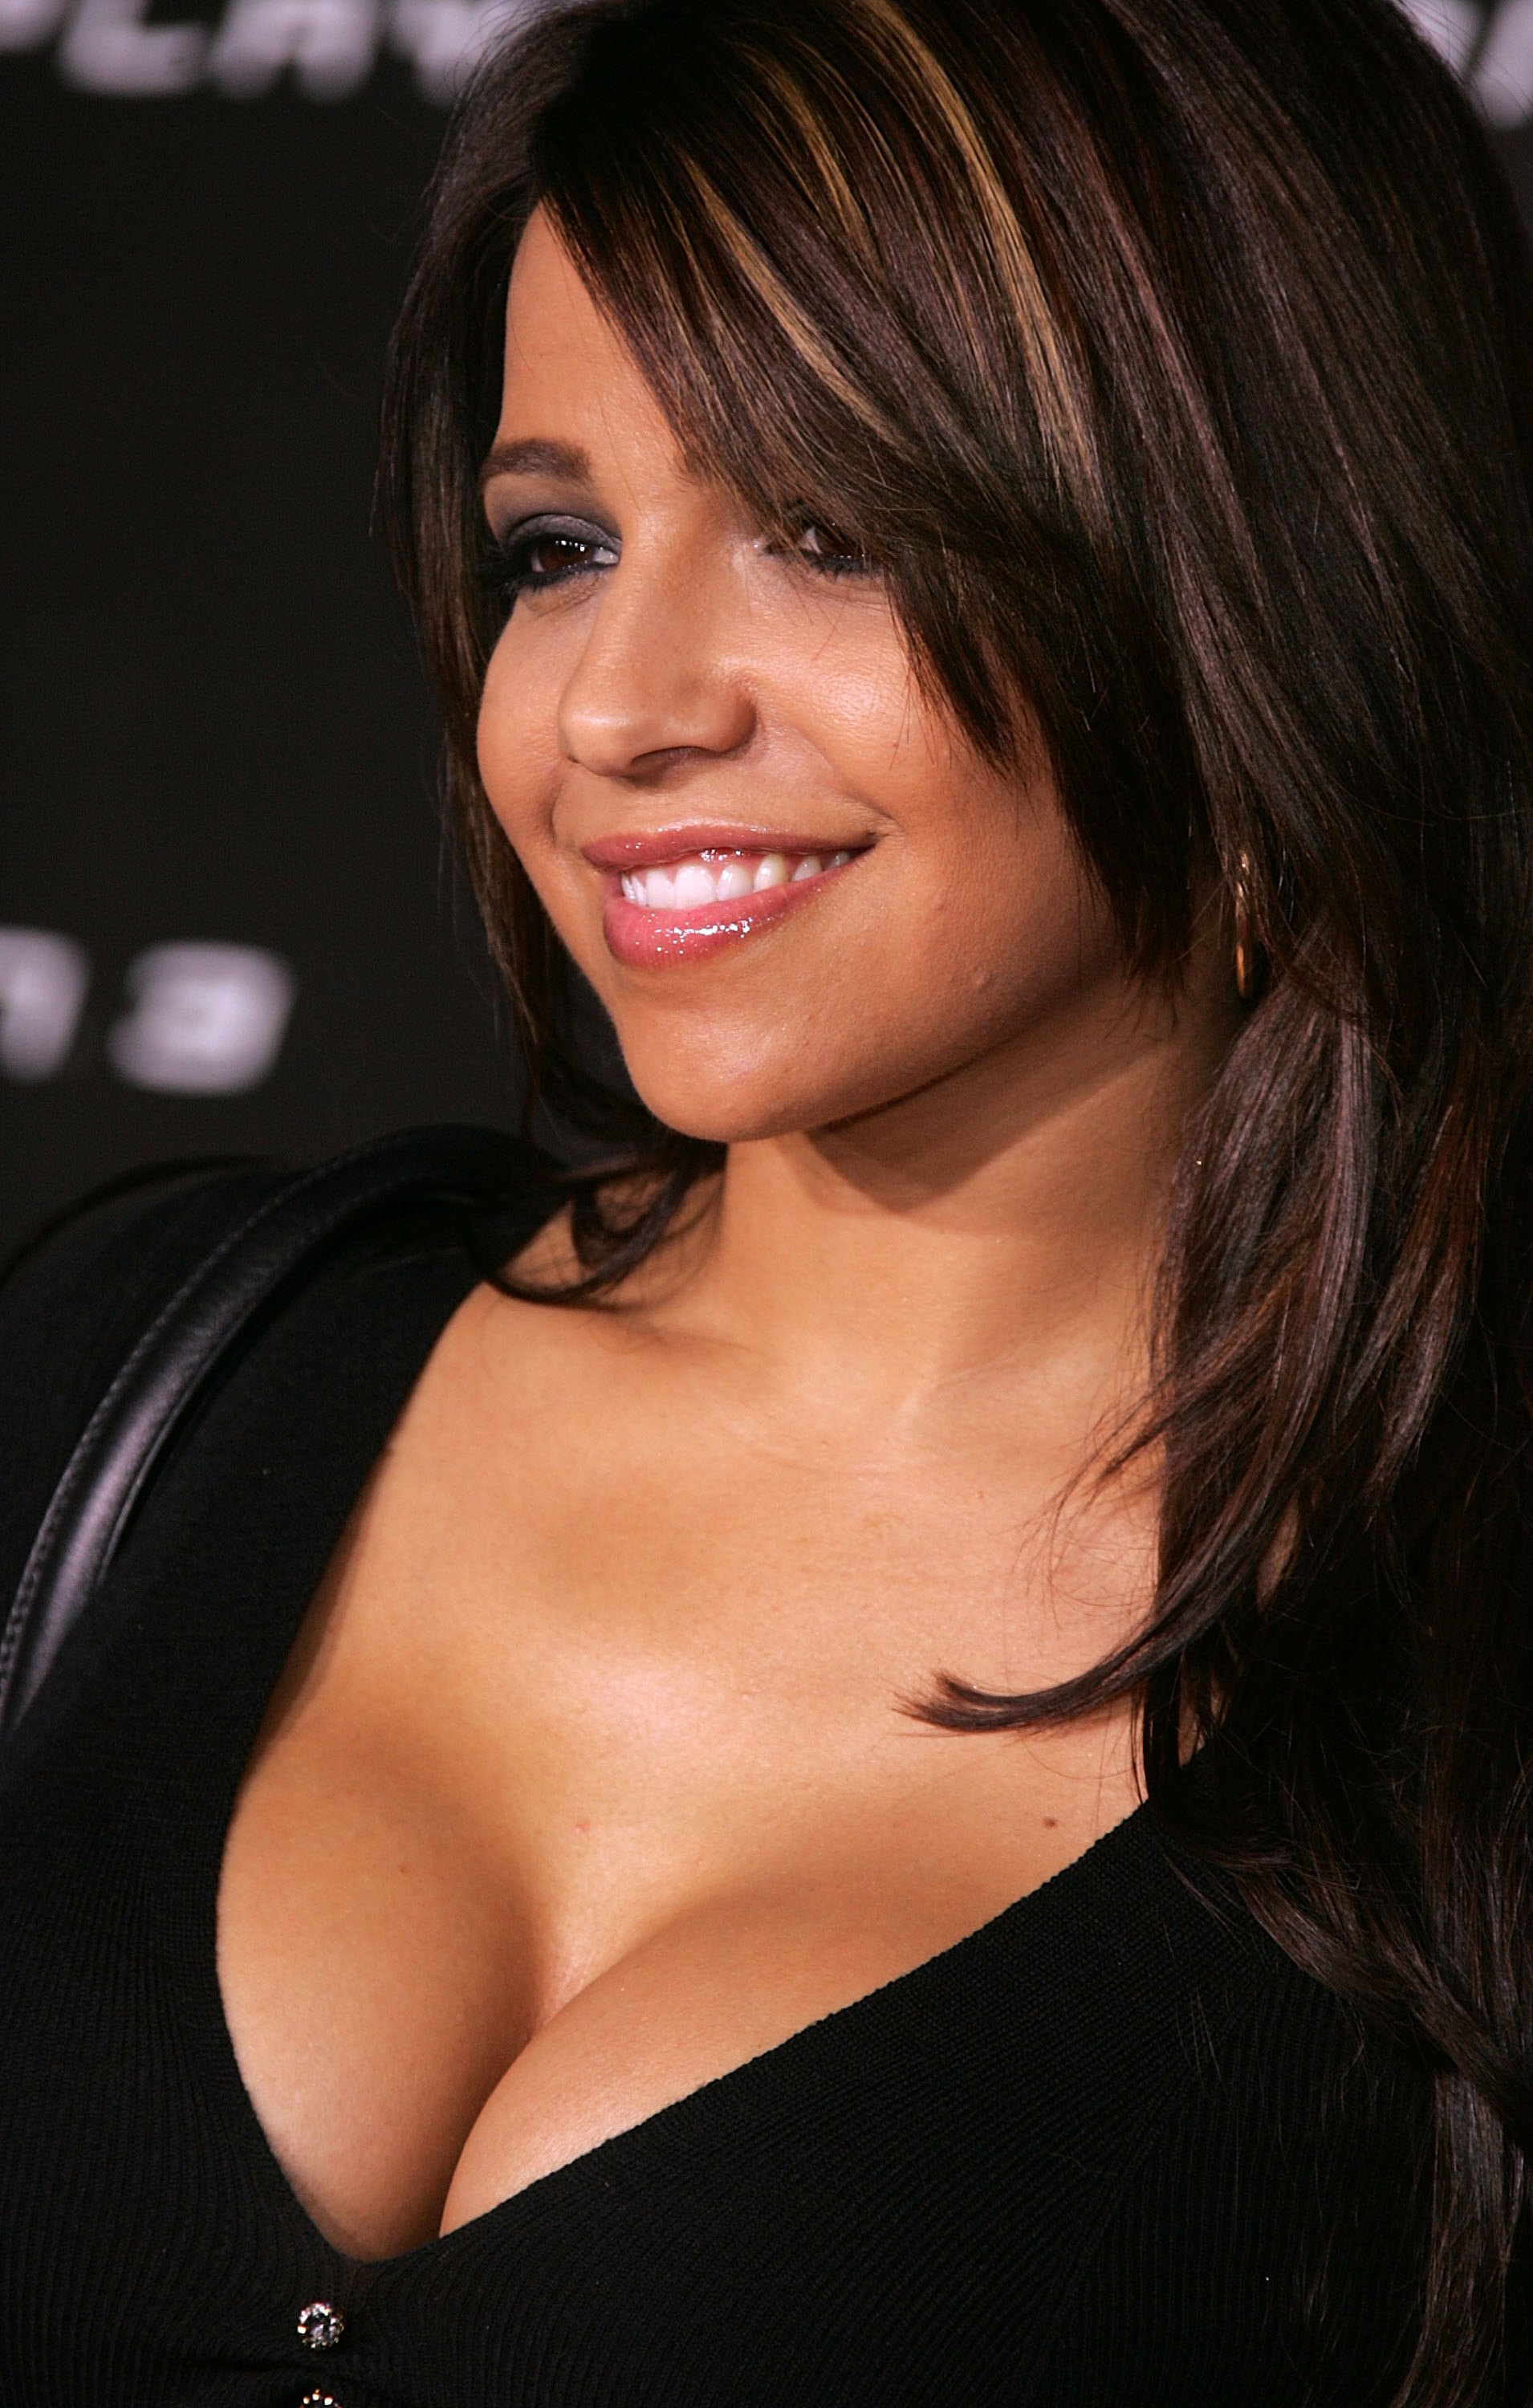 Pics of celebrity breast implants